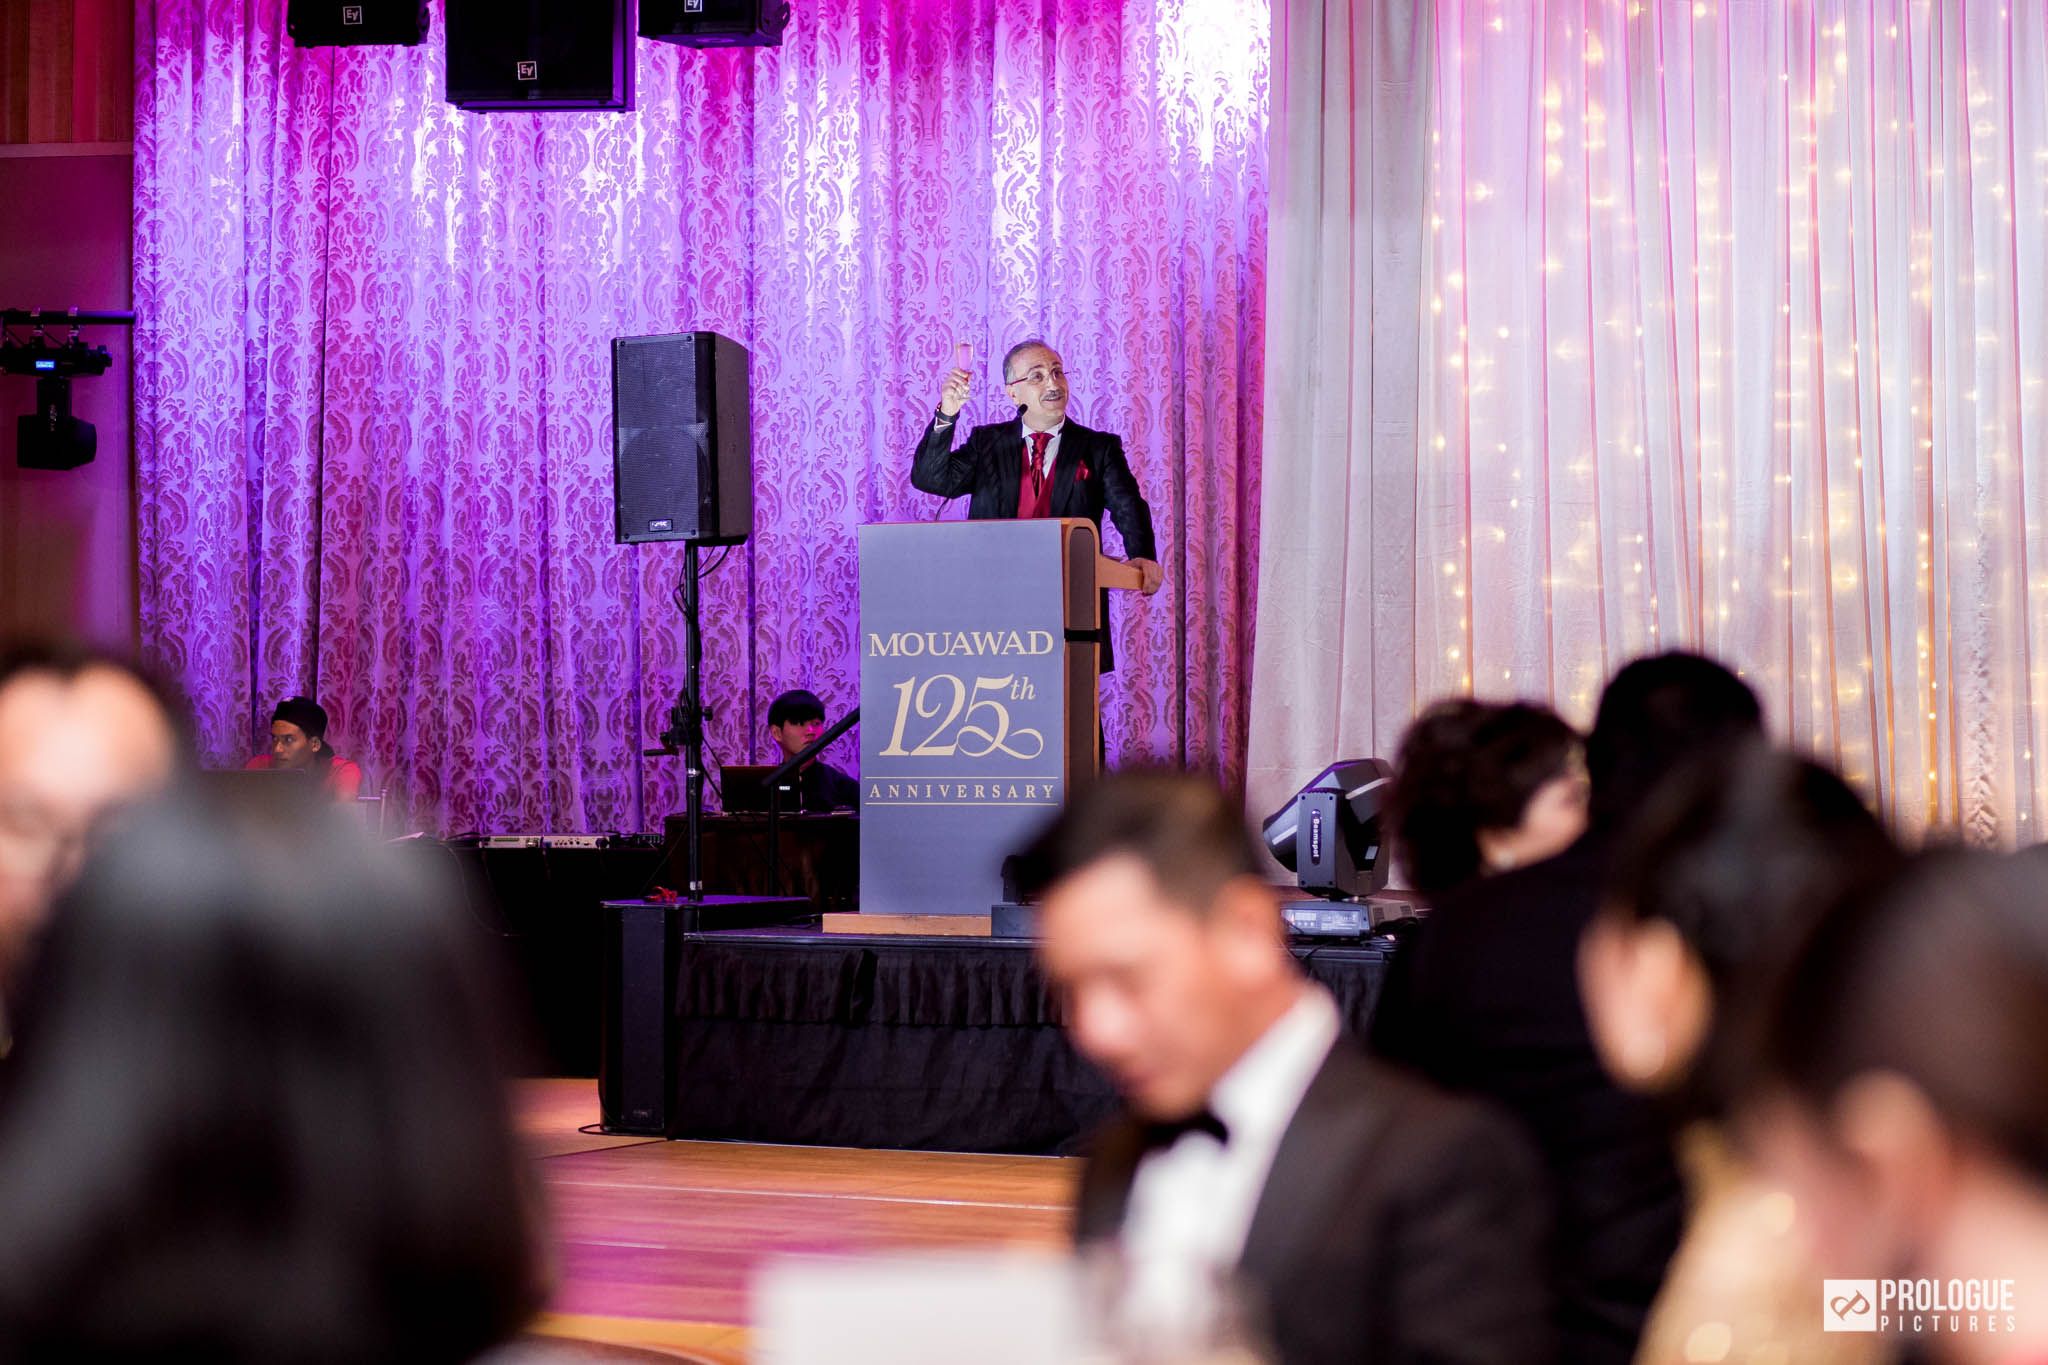 mouawad-125th-anniversary-event-photography-singapore-prologue-pictures-14